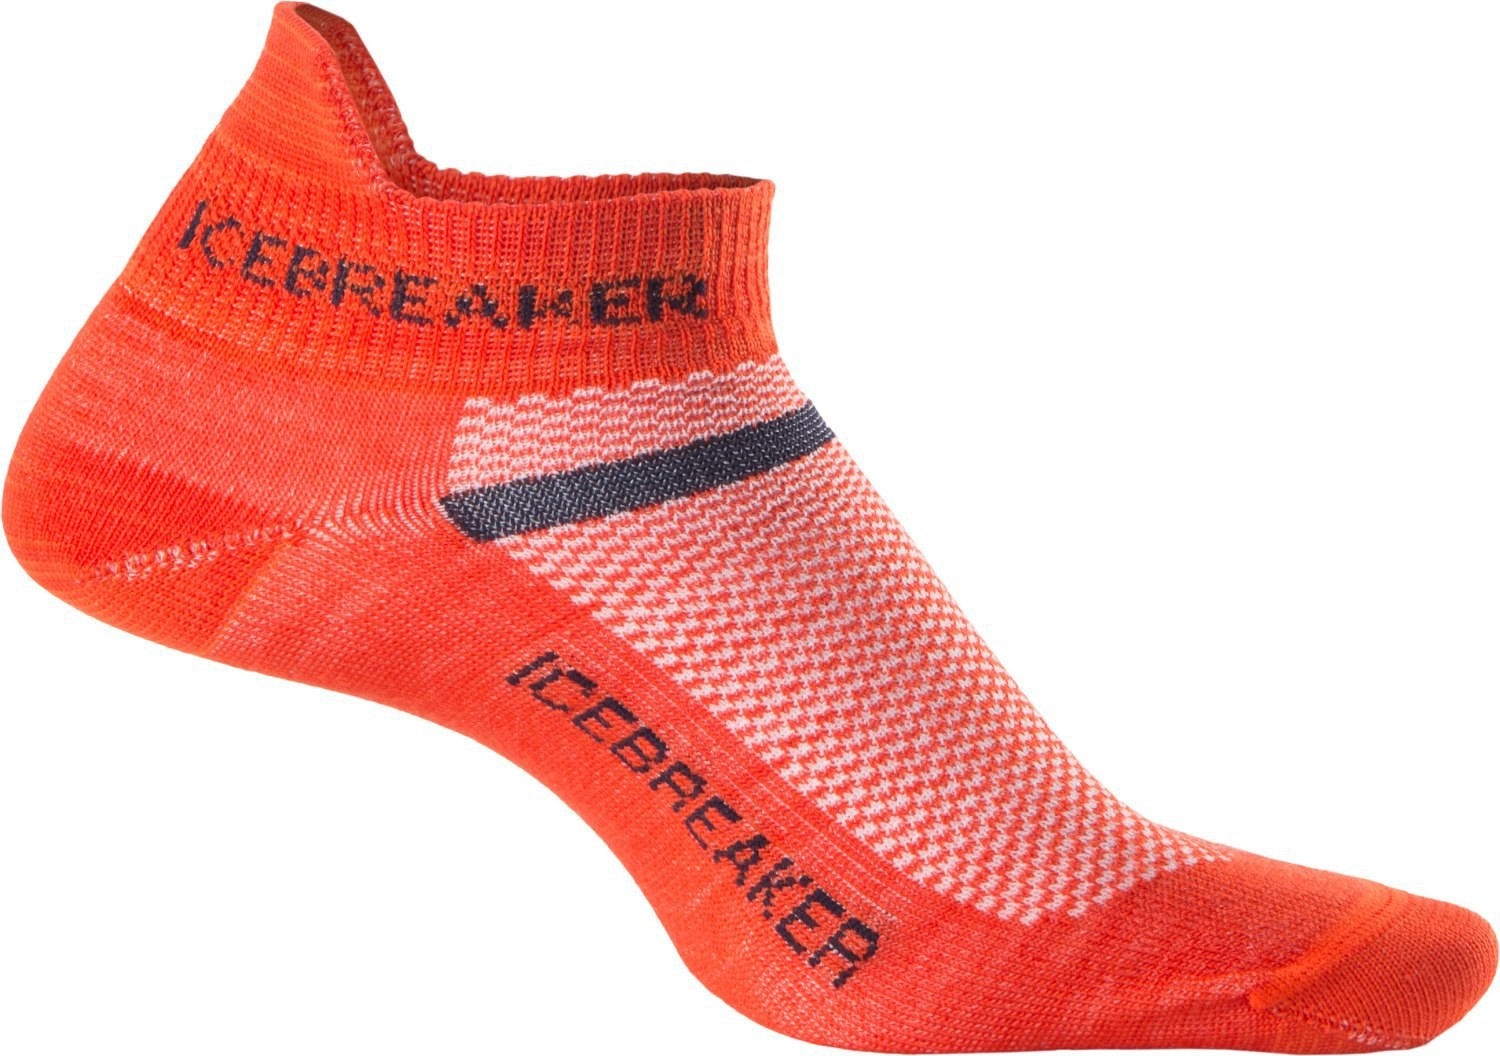 Icebreaker Multisport Ultra Light Mini Heat/Admiral-30